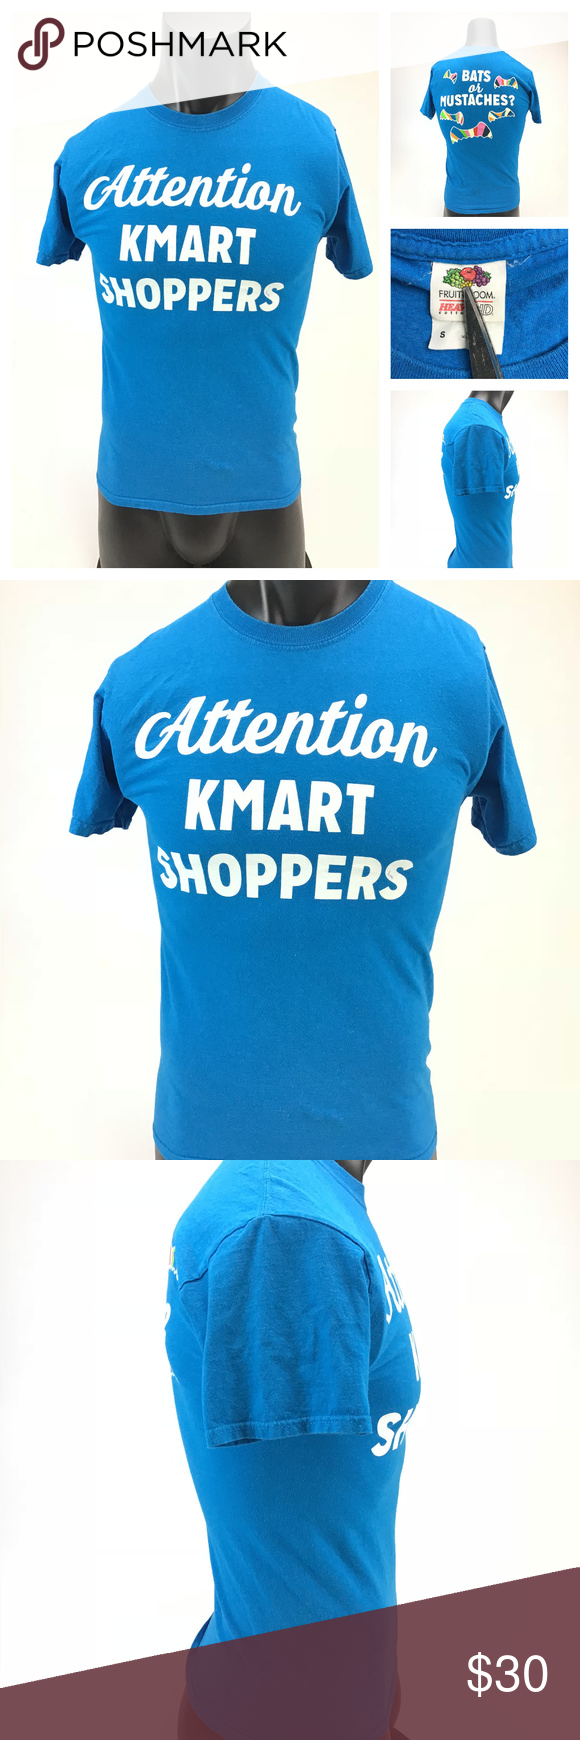 dda407205 Vtg Attention Kmart Shoppers T shirt mens small Description: Vintage  Attention Kmart shoppers, Bats or Mustaches? graphic Tshirt Brand: Fruit of  the Loom ...